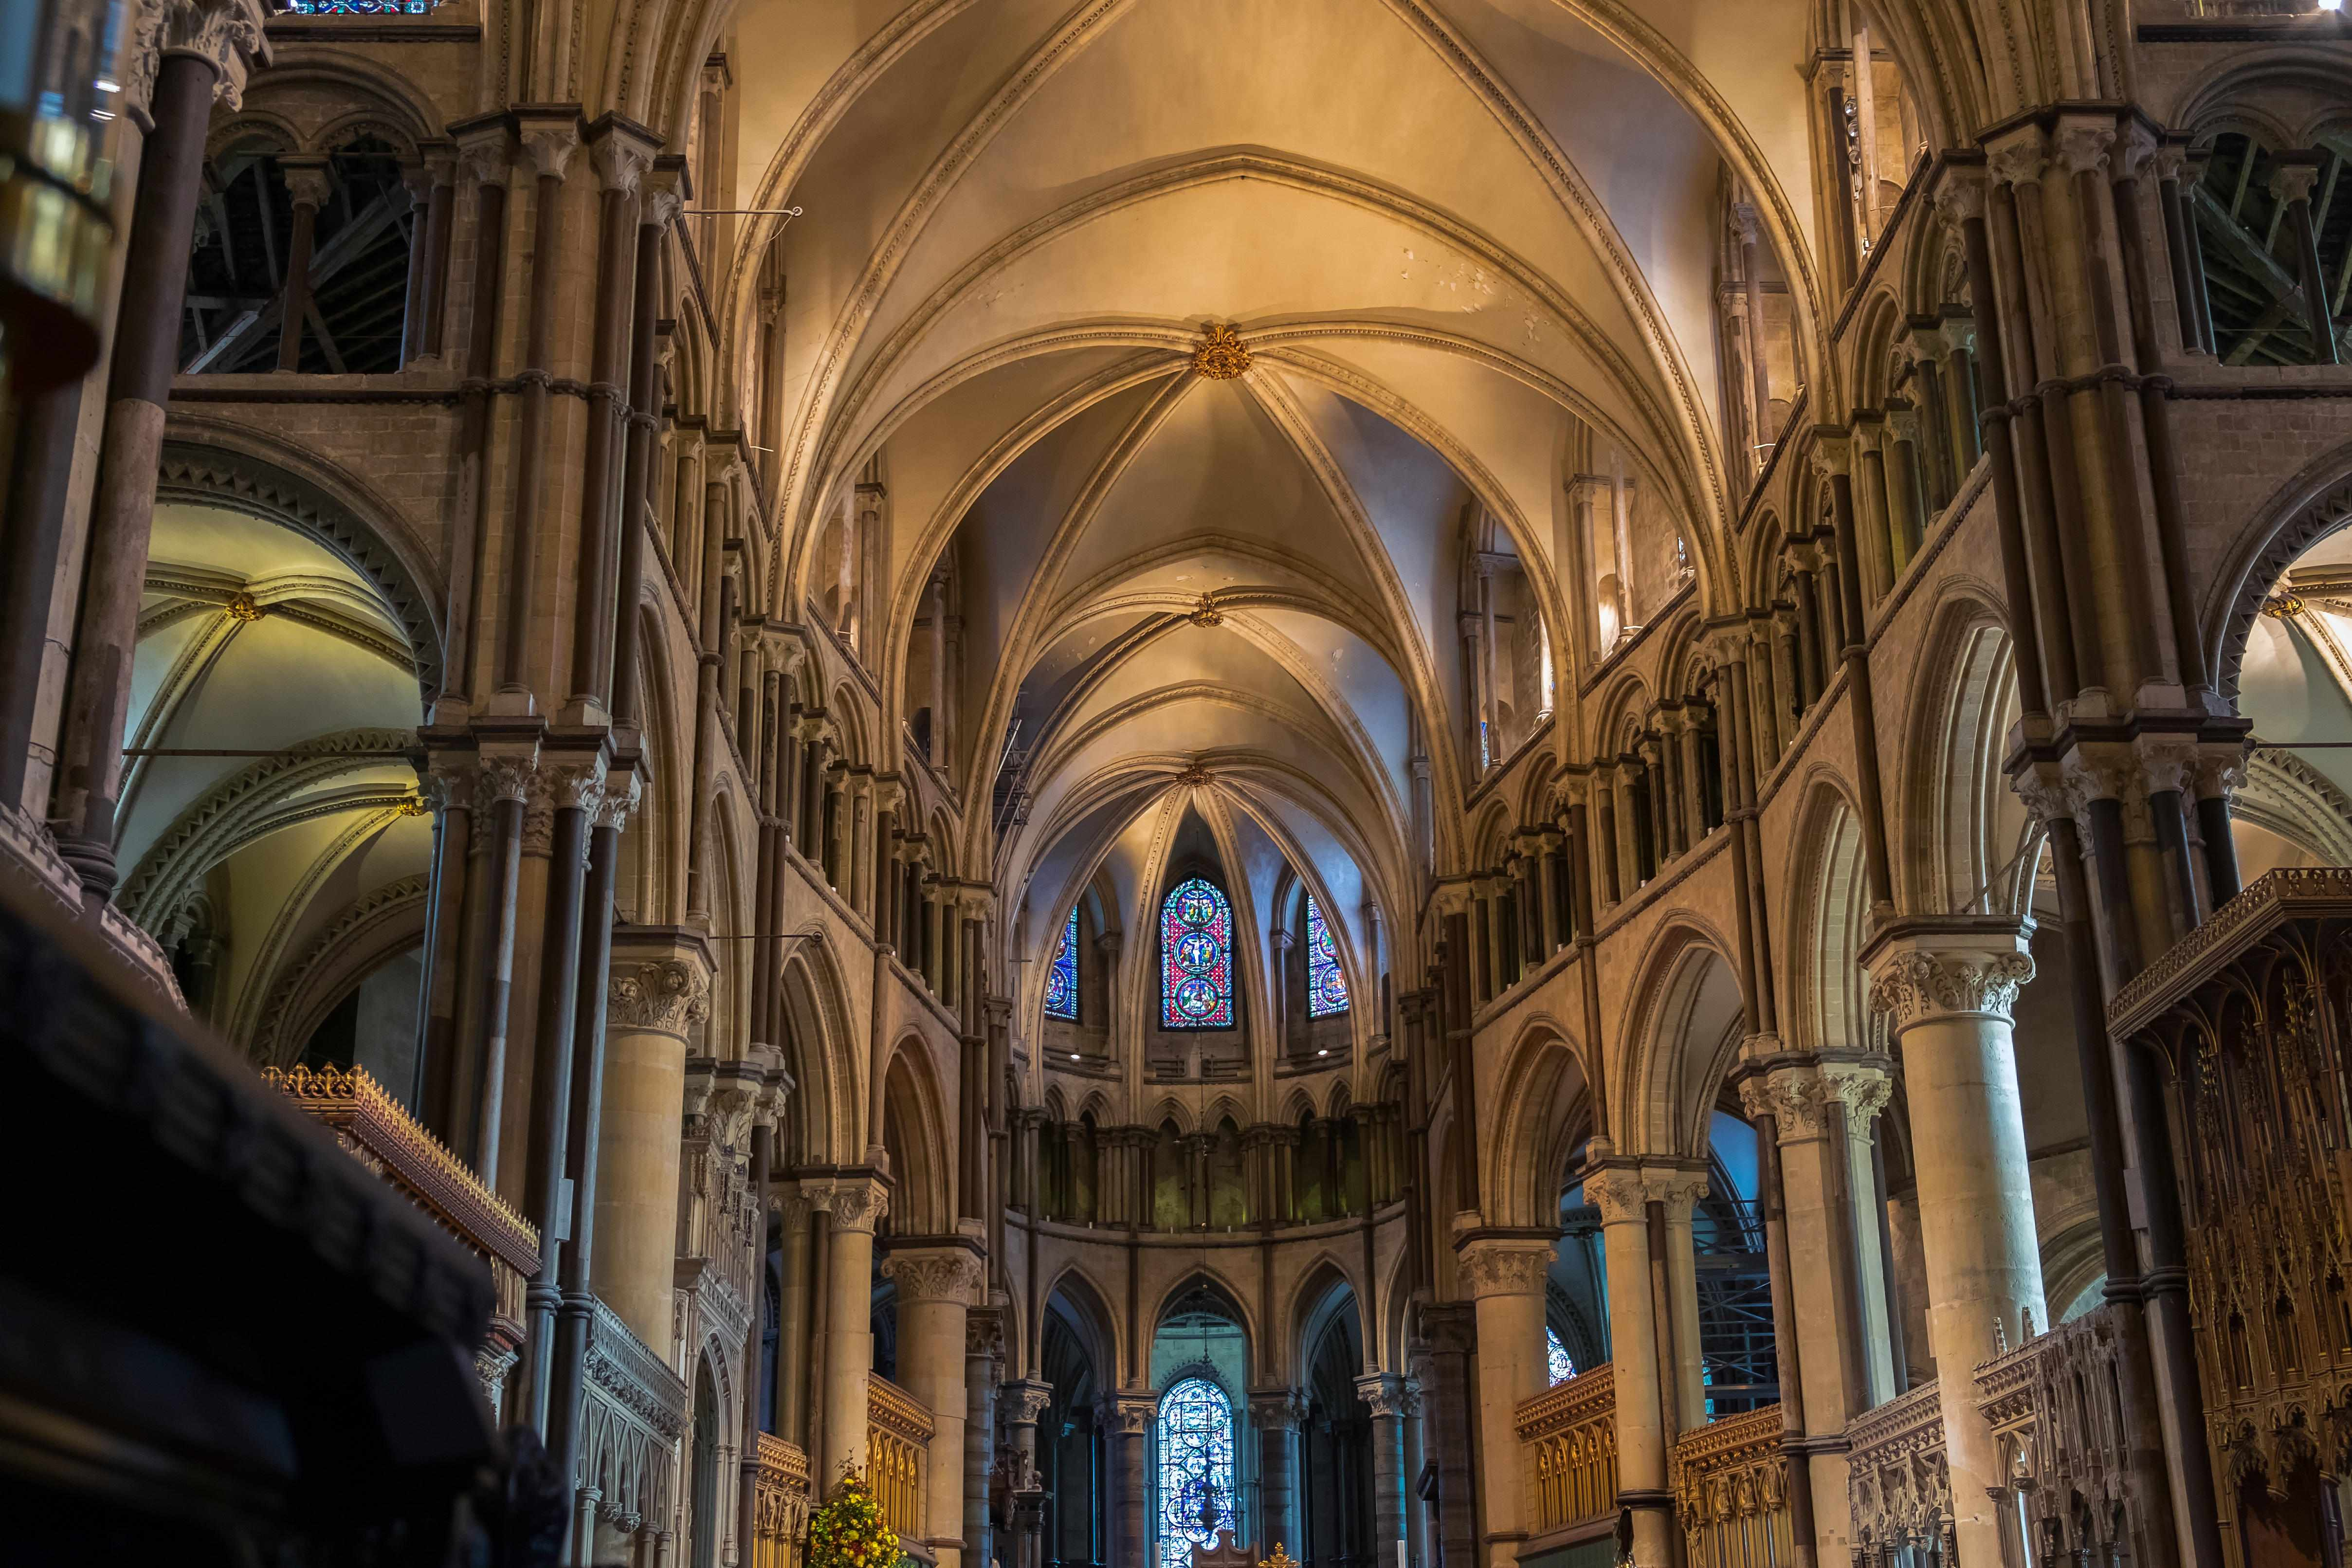 A view from the Choir of Canterbury Cathedral looking towards Trinity Chapel, which was built in the 12th century to house the remains of Thomas Becket. (Photo by Alamy)